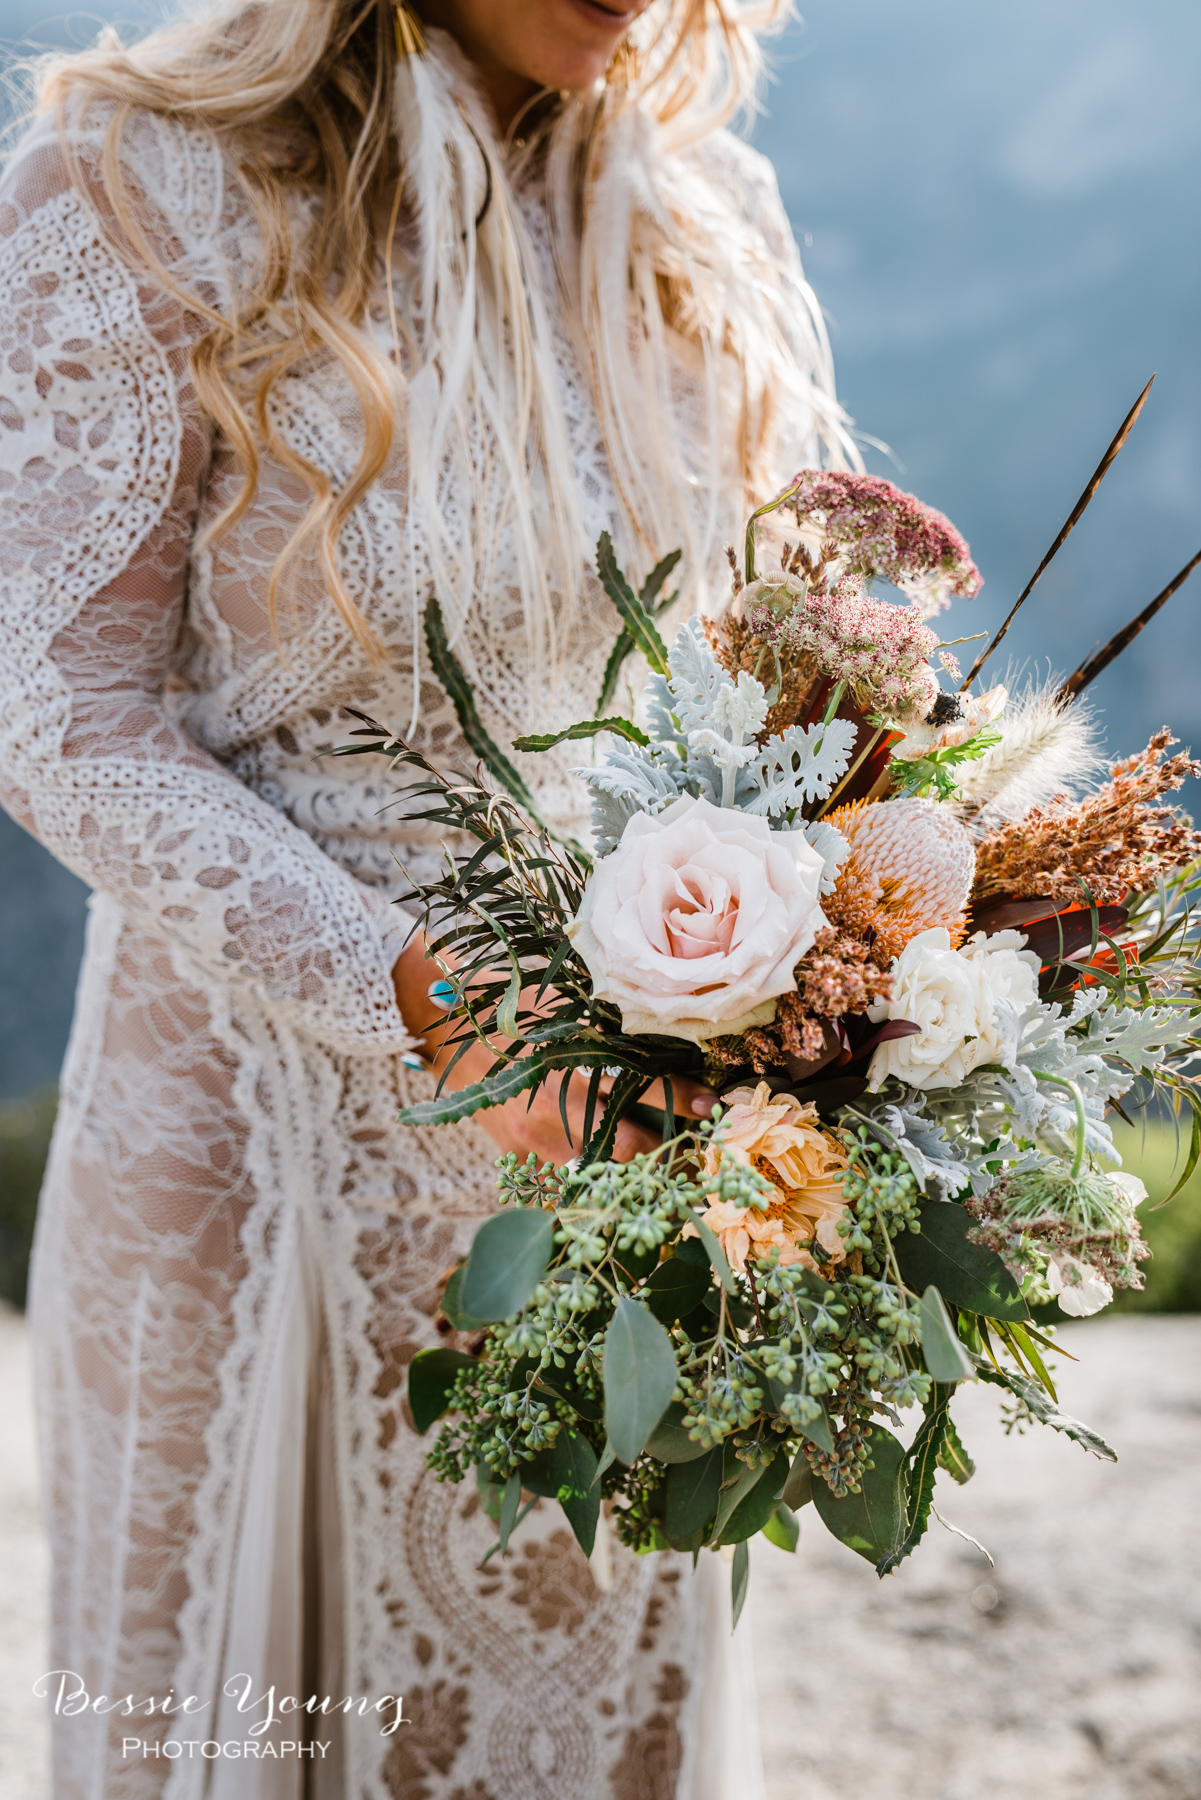 Wedding bouquet ideas  - by Bessie Young Photography-11.jpg